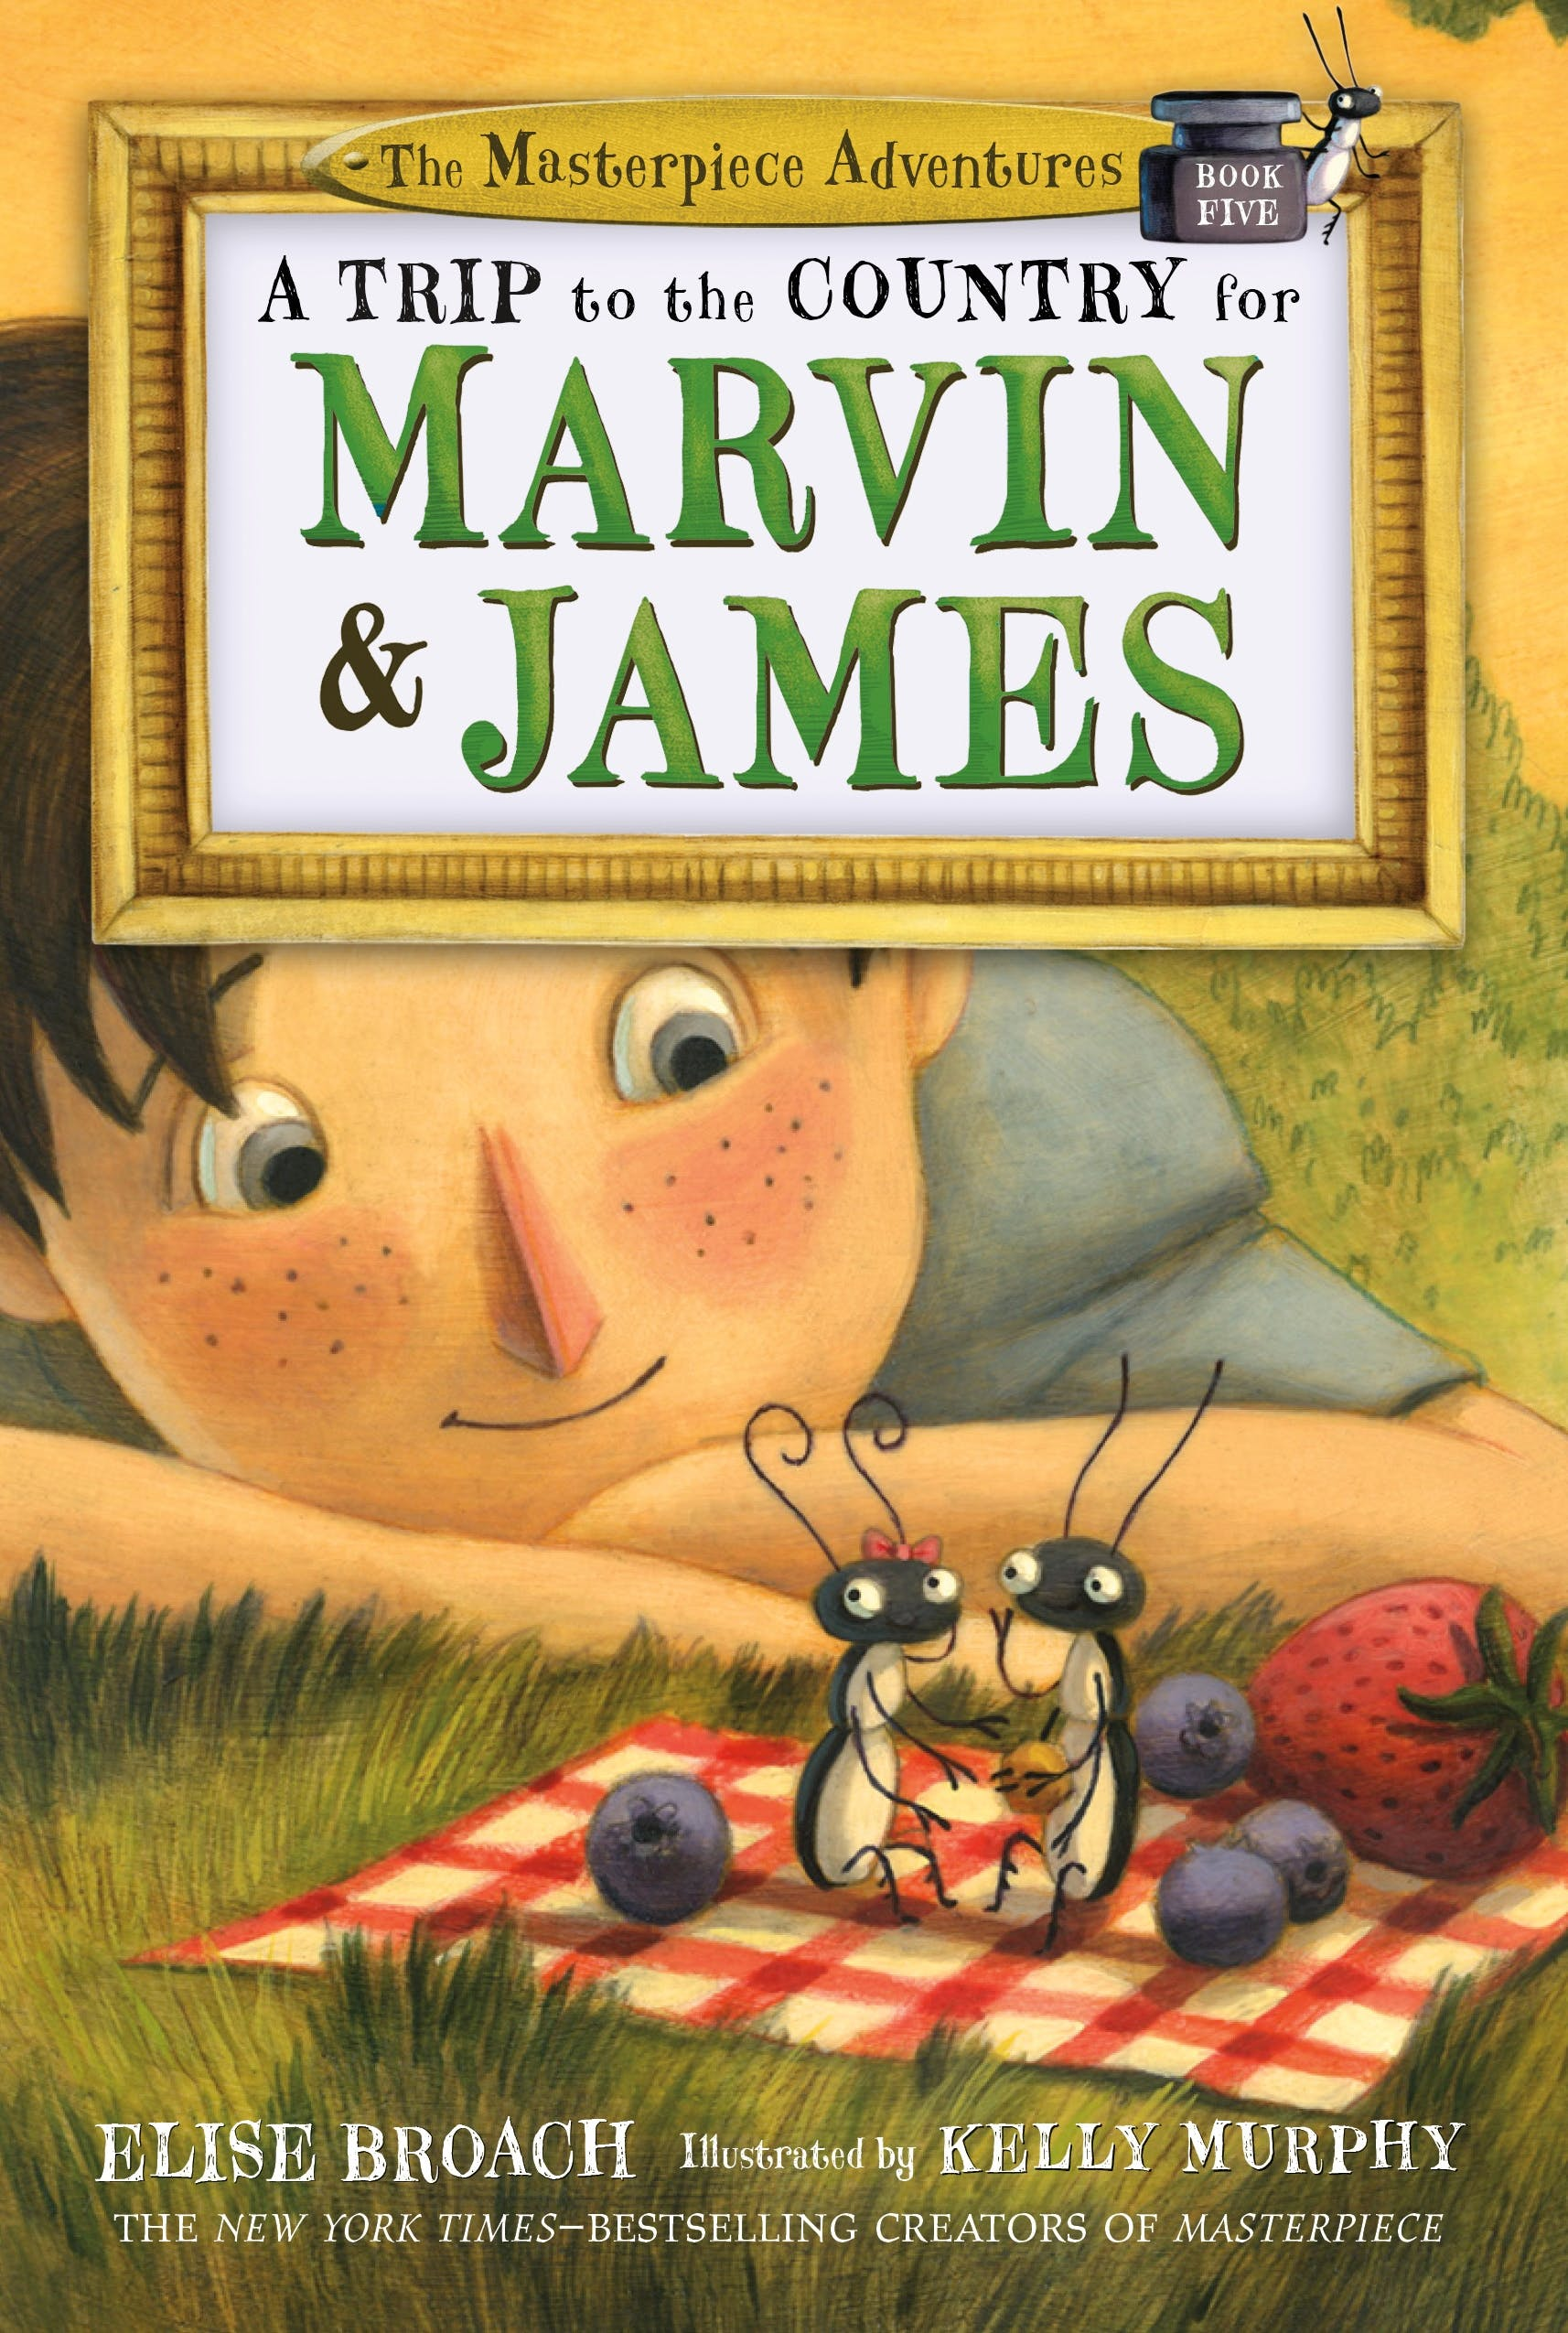 Image of A Trip to the Country for Marvin & James